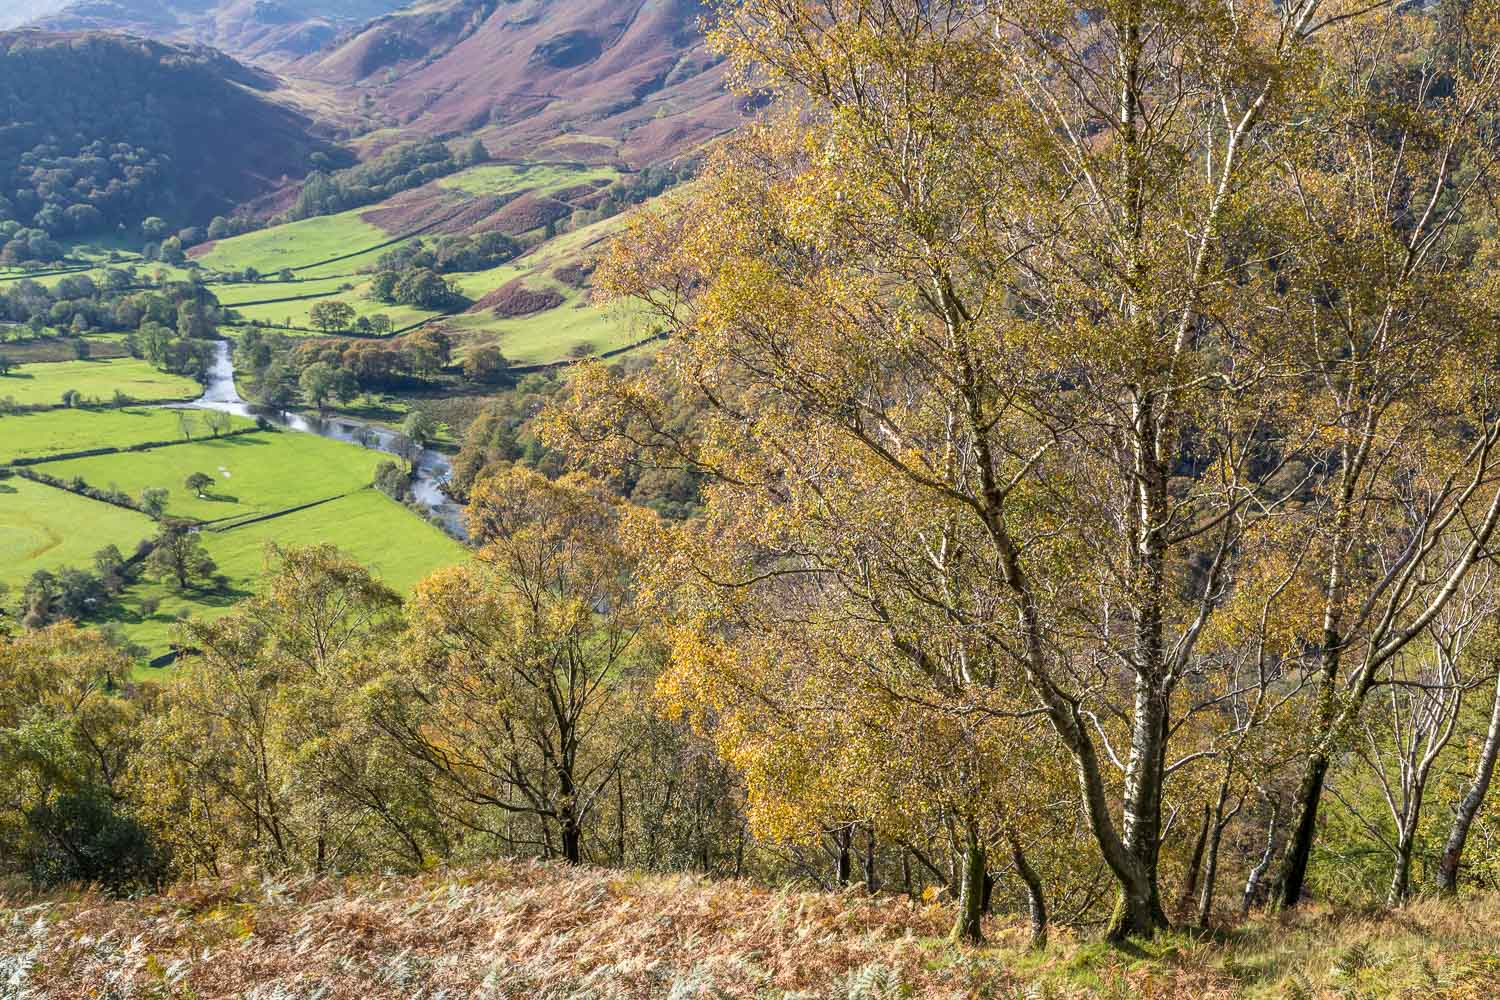 Grange Fell walk, Borrowdale, River Derwent